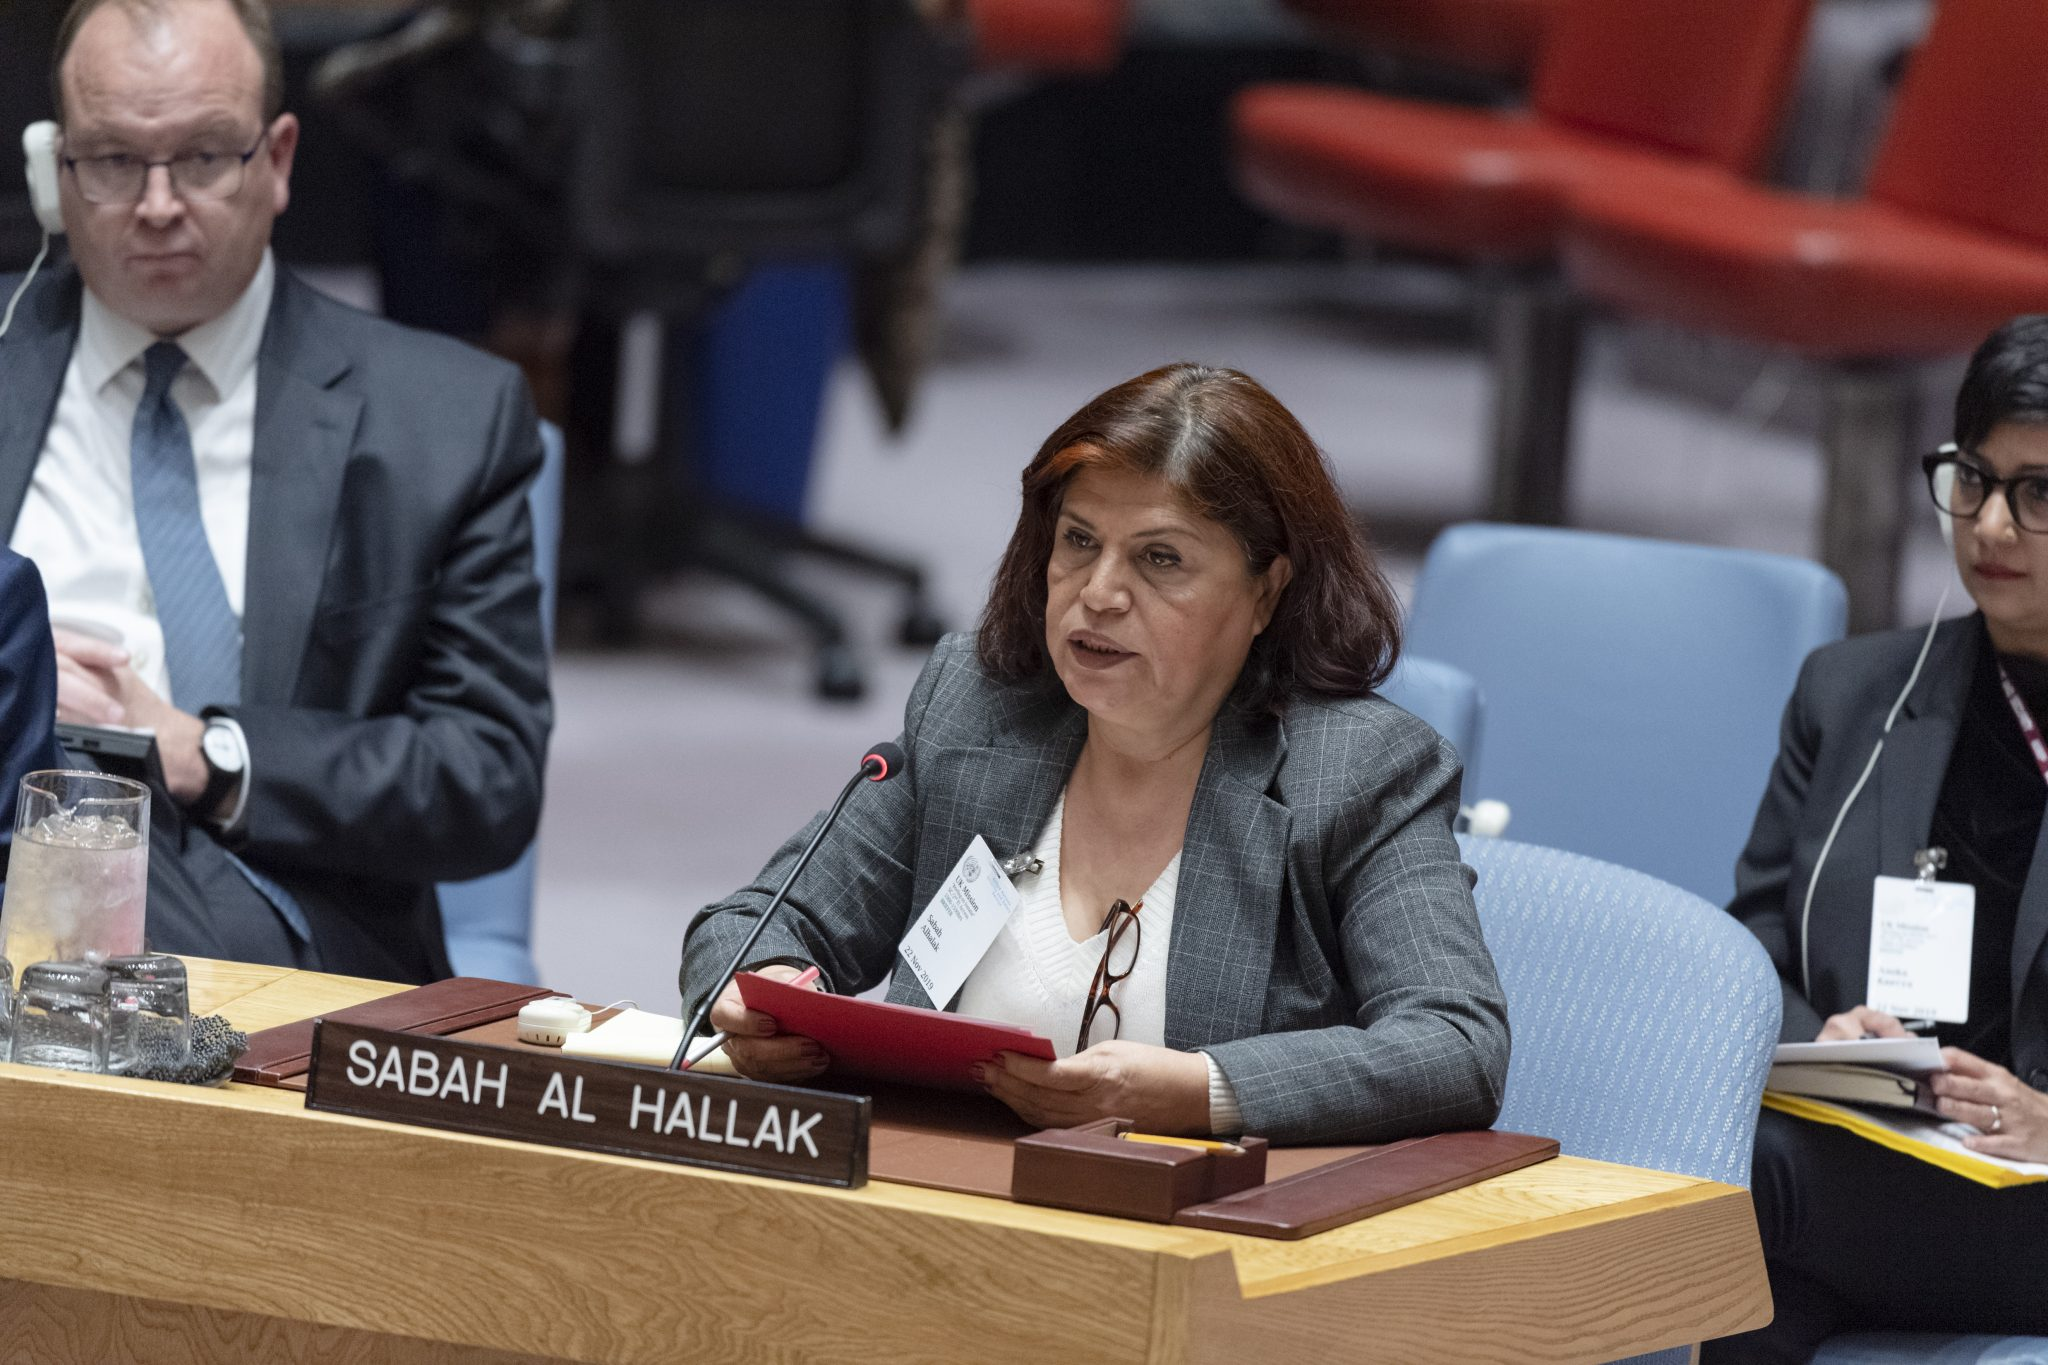 UN Security Council Briefing on Syria by Sabah Alhallak